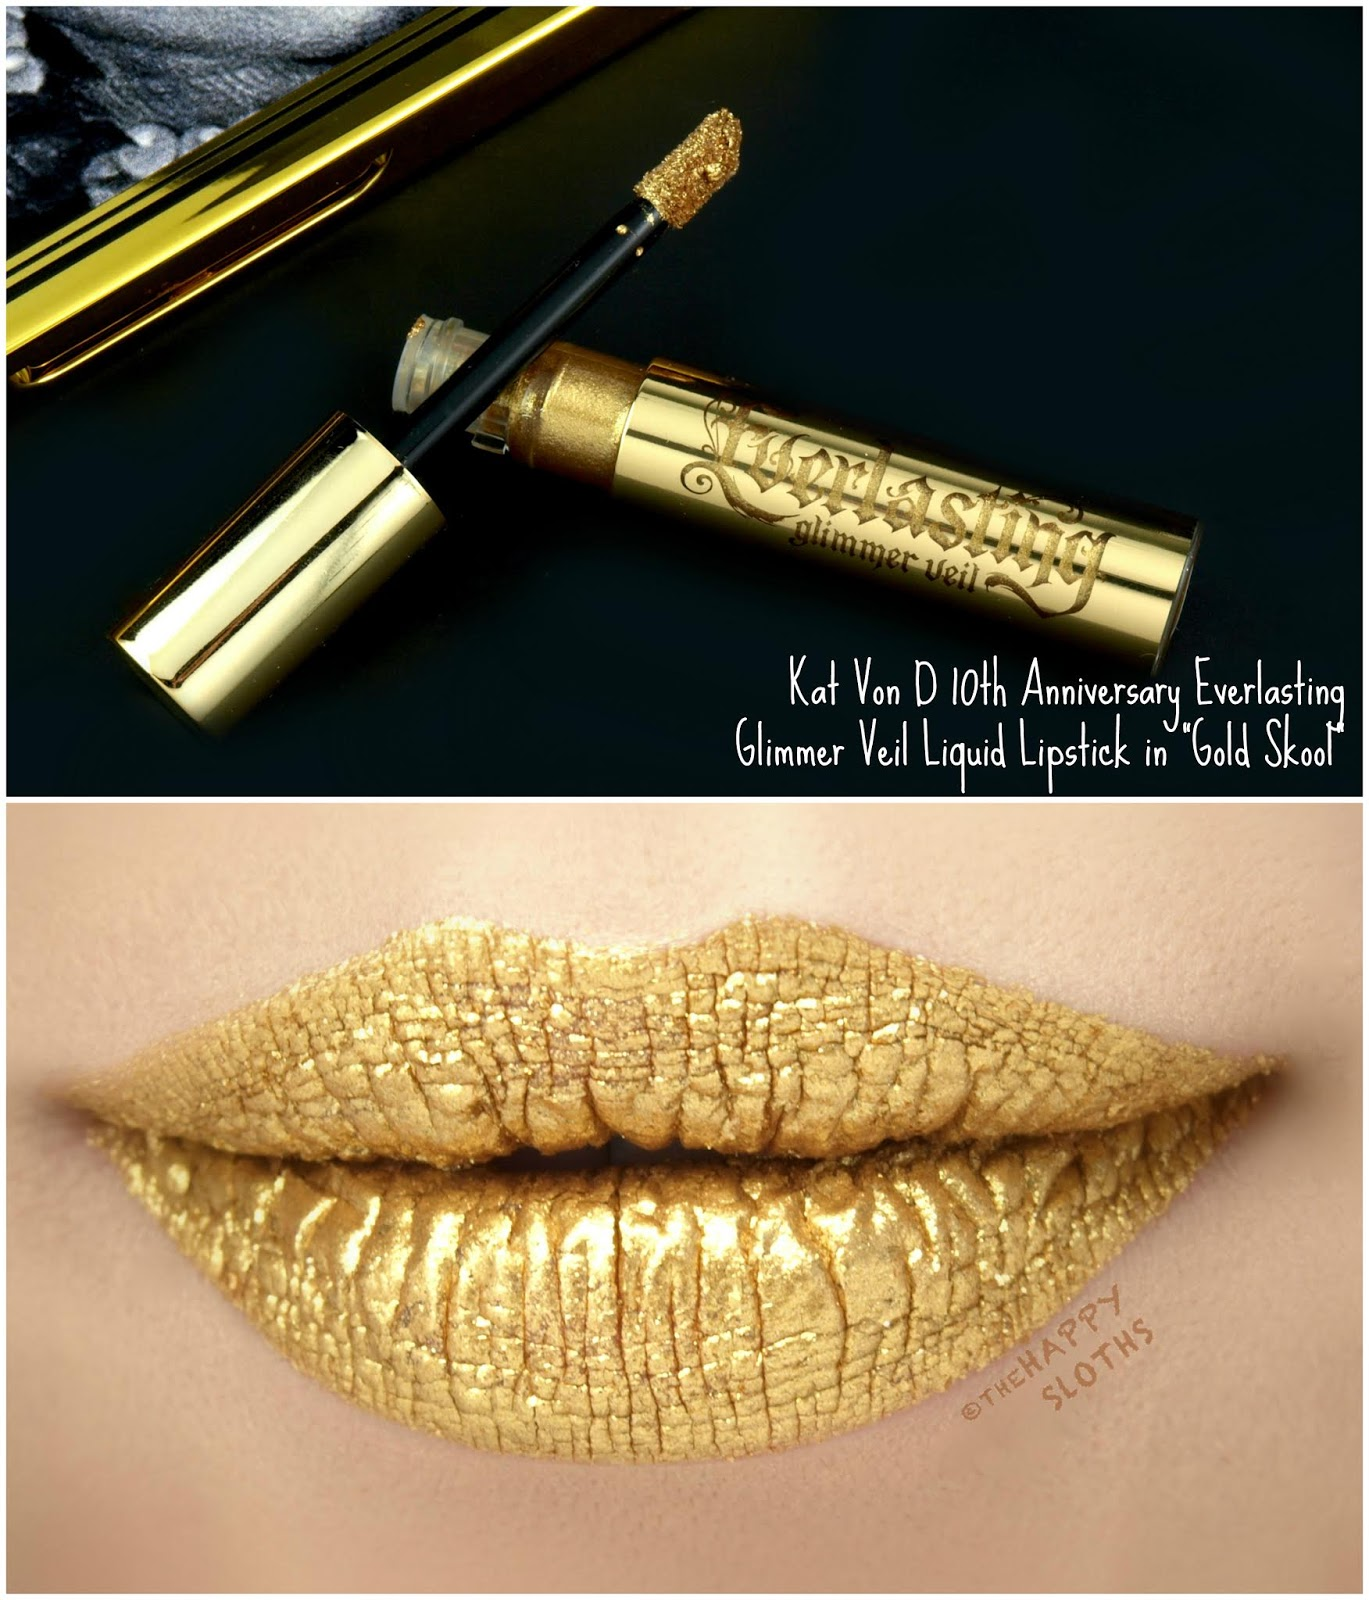 "Kat Von D | 10th Anniversary Everlasting Glimmer Veil Liquid Lipstick in ""Gold Skool"": Review and Swatches"